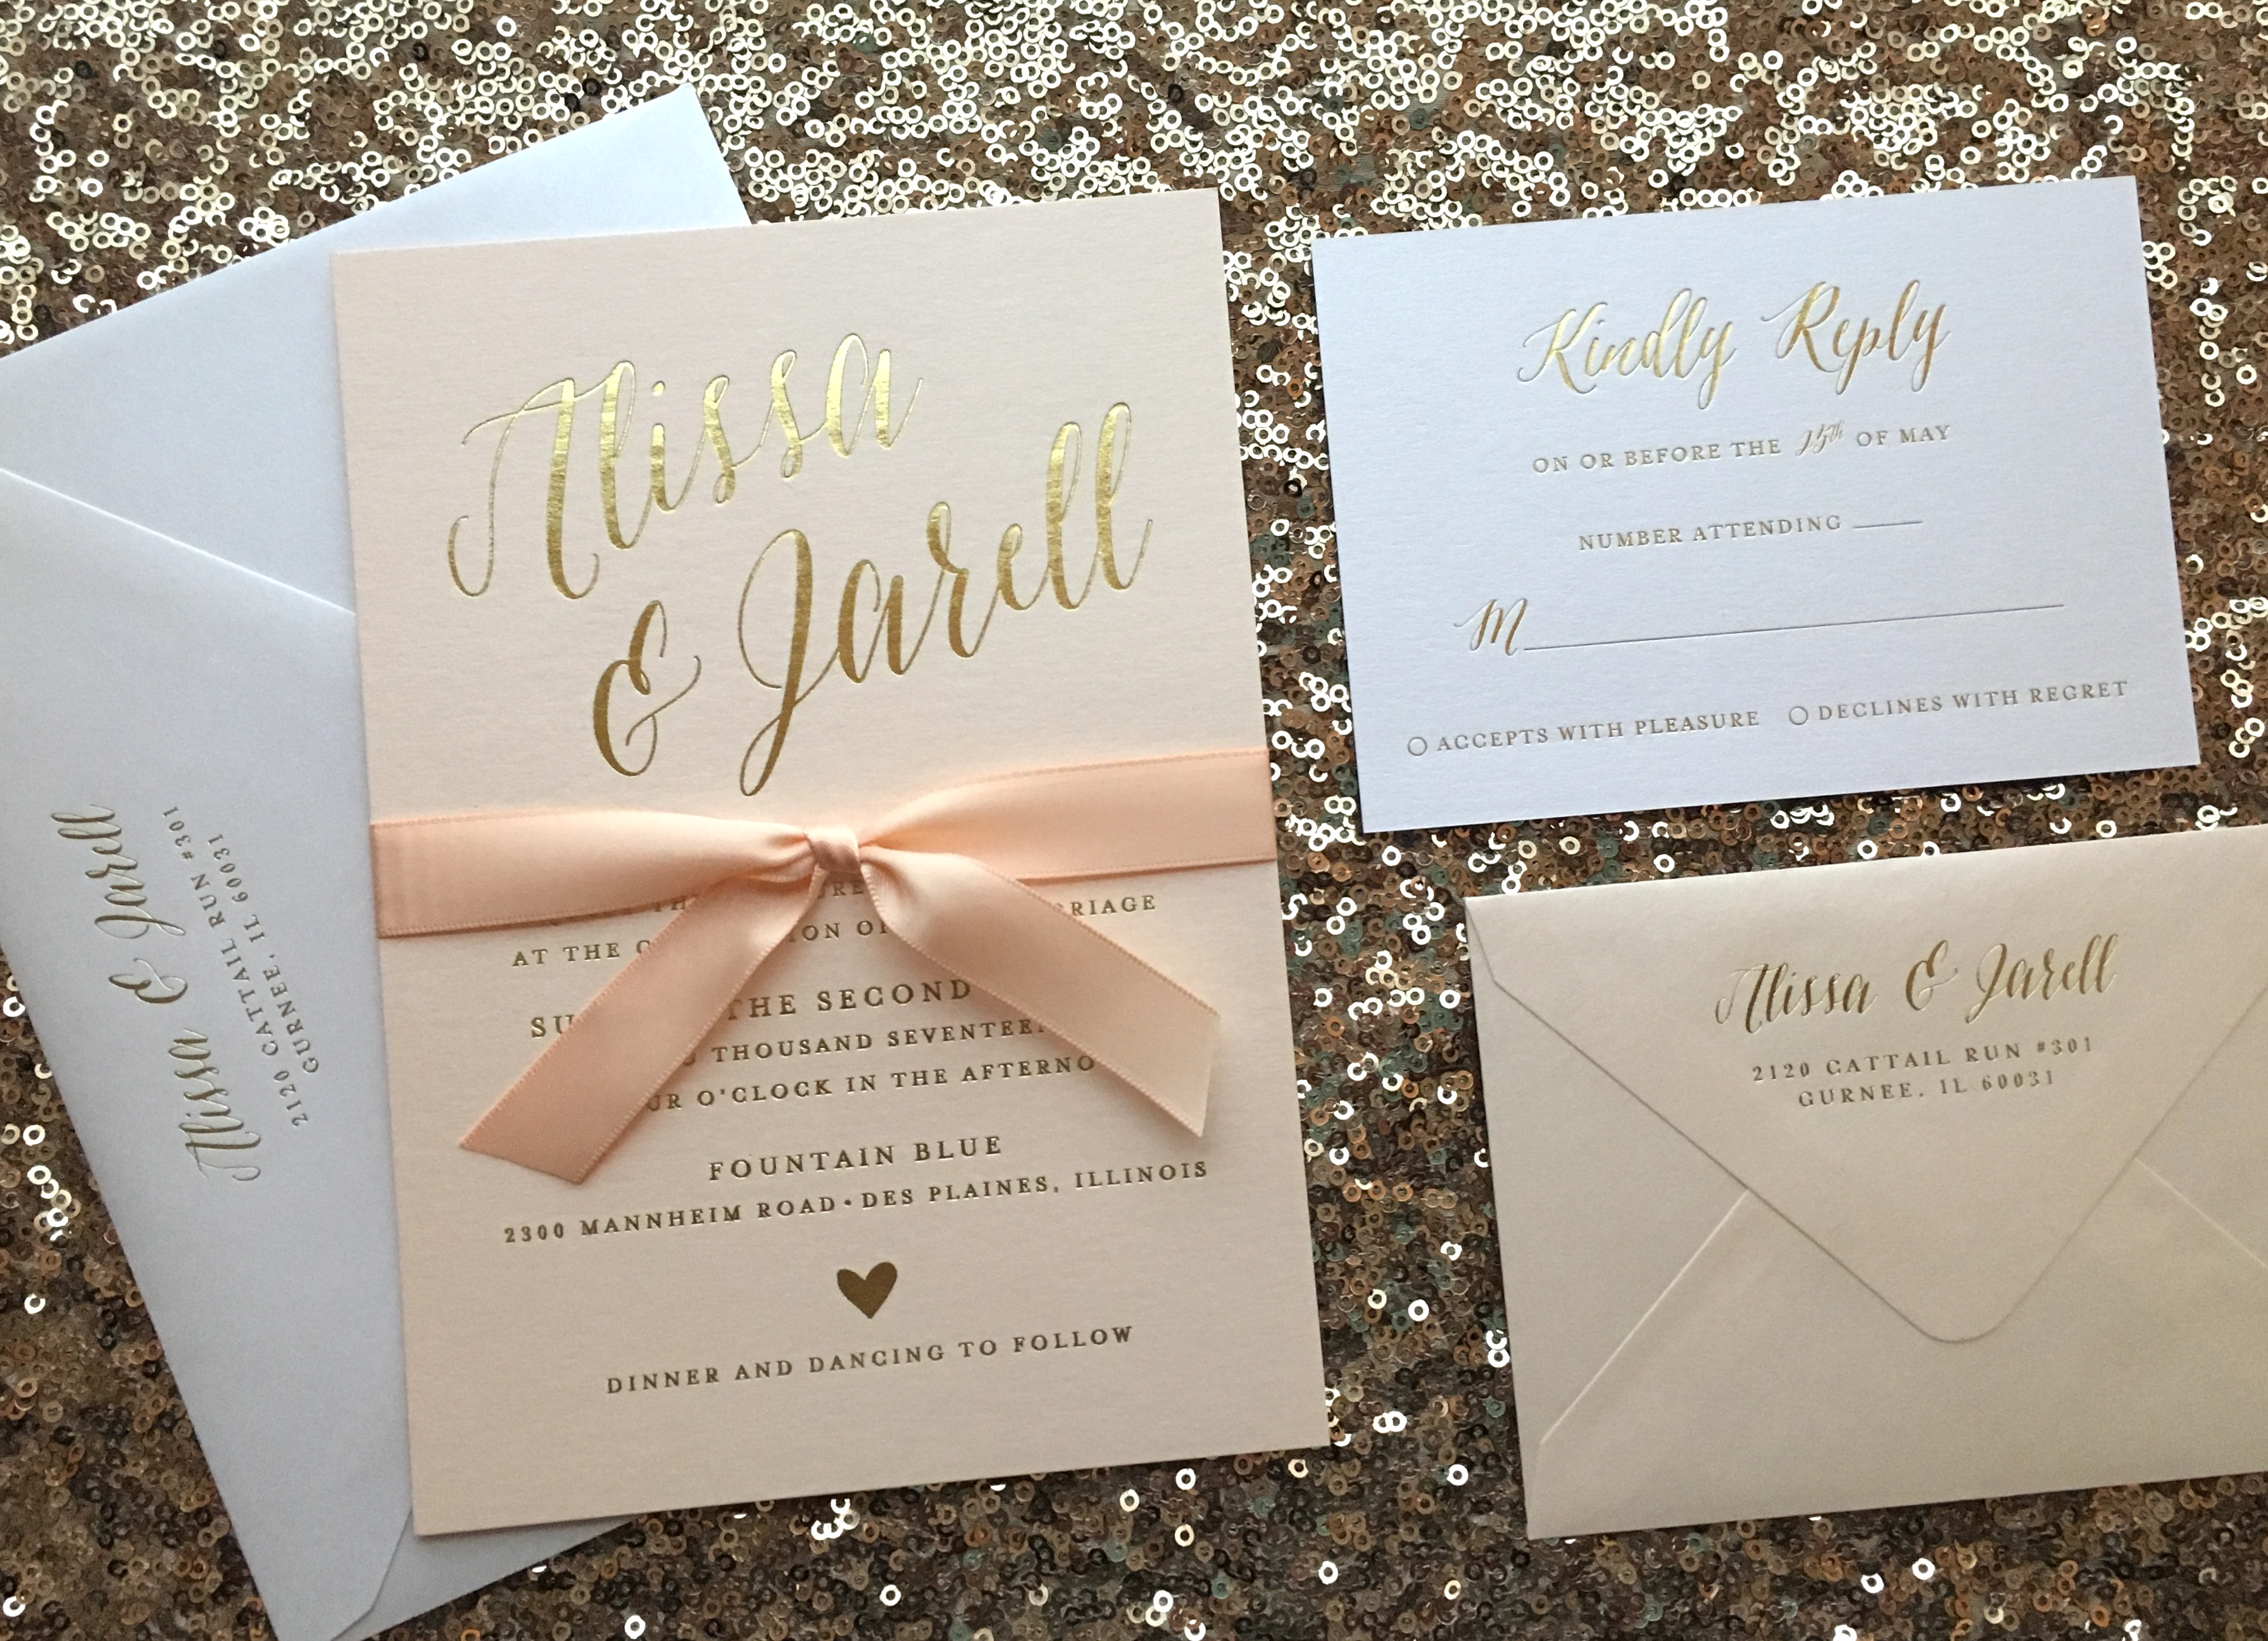 Posted by Invitation Architects - A Invitations & Print professional